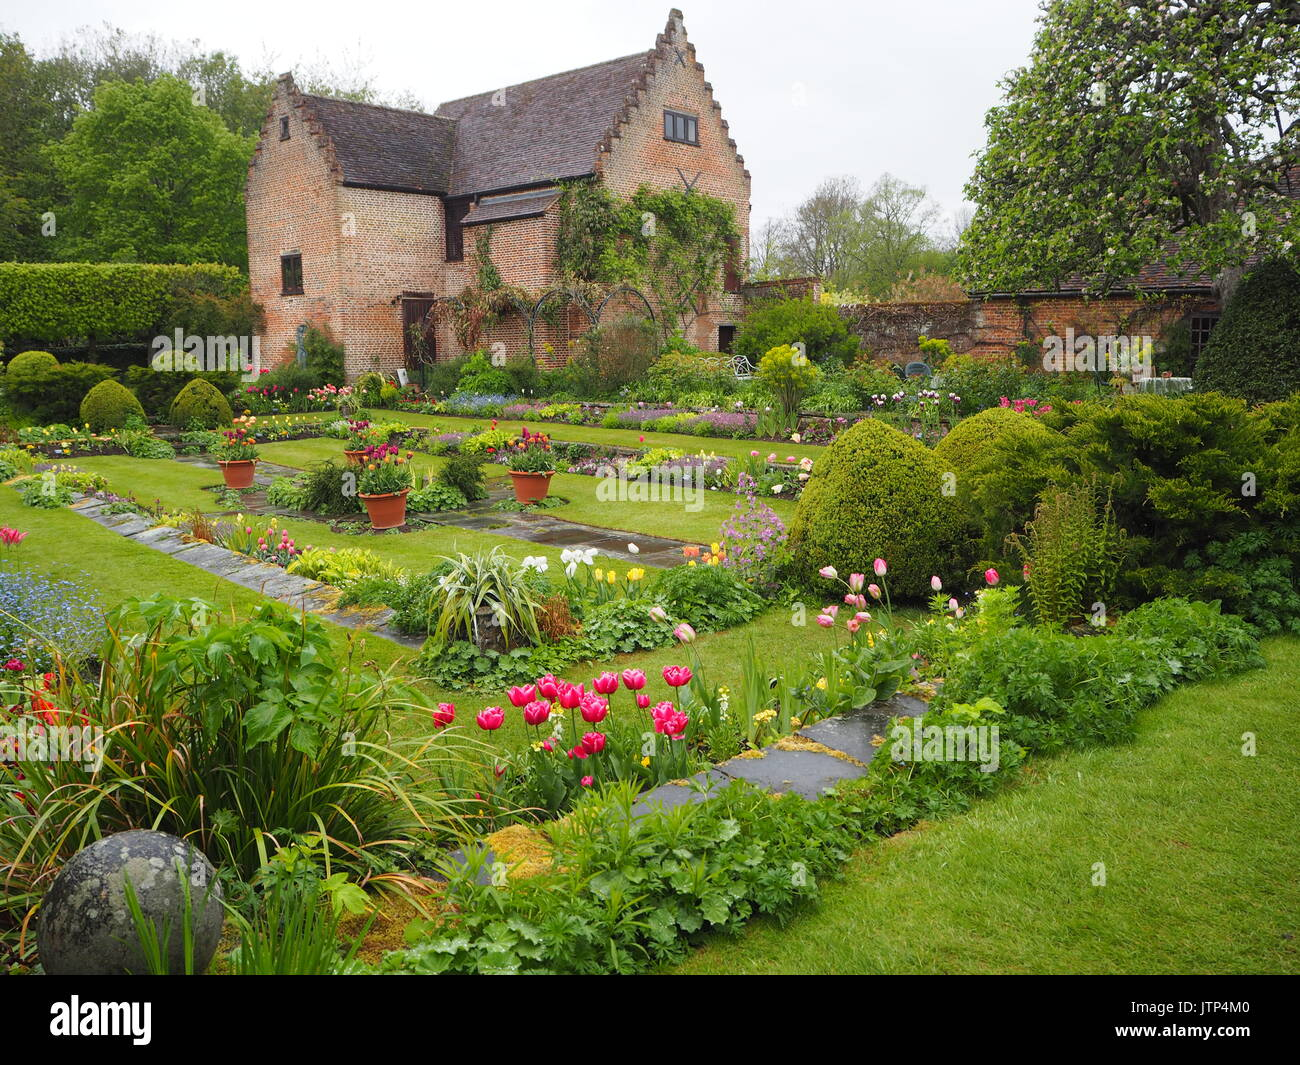 Chenies Manor sunken garden. Wet afternoon at tulip time; ornamental pond, apple tree, fresh greenery and plant Stock Photo